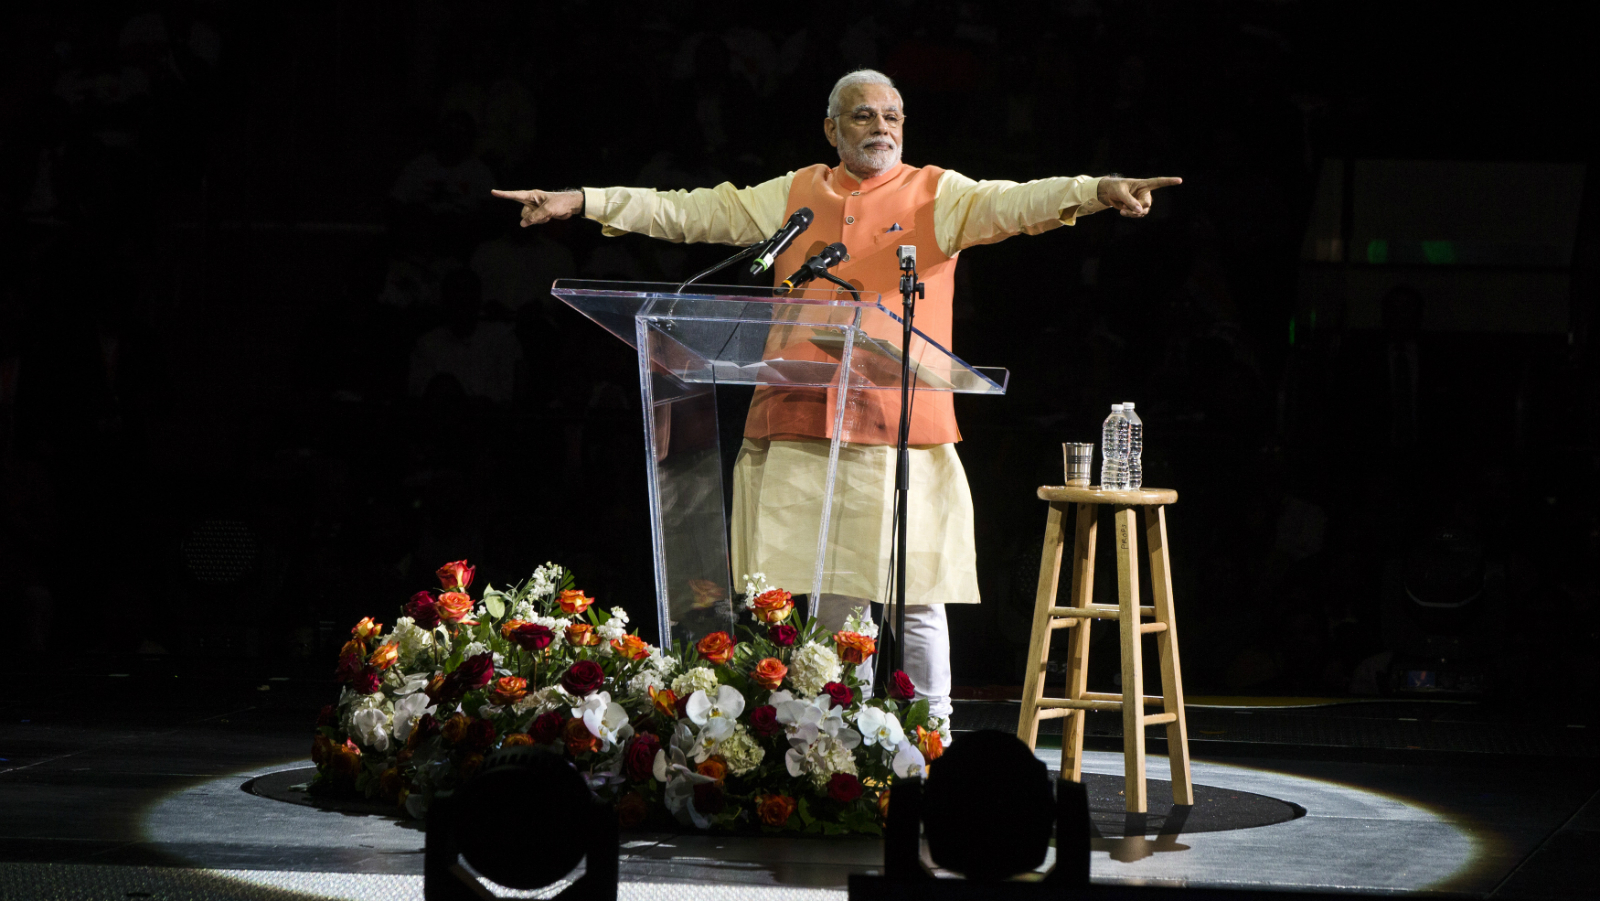 India's Prime Minister Narendra Modi gestures while speaking at Madison Square Garden in New York, during a visit to the United States, September 28, 2014.